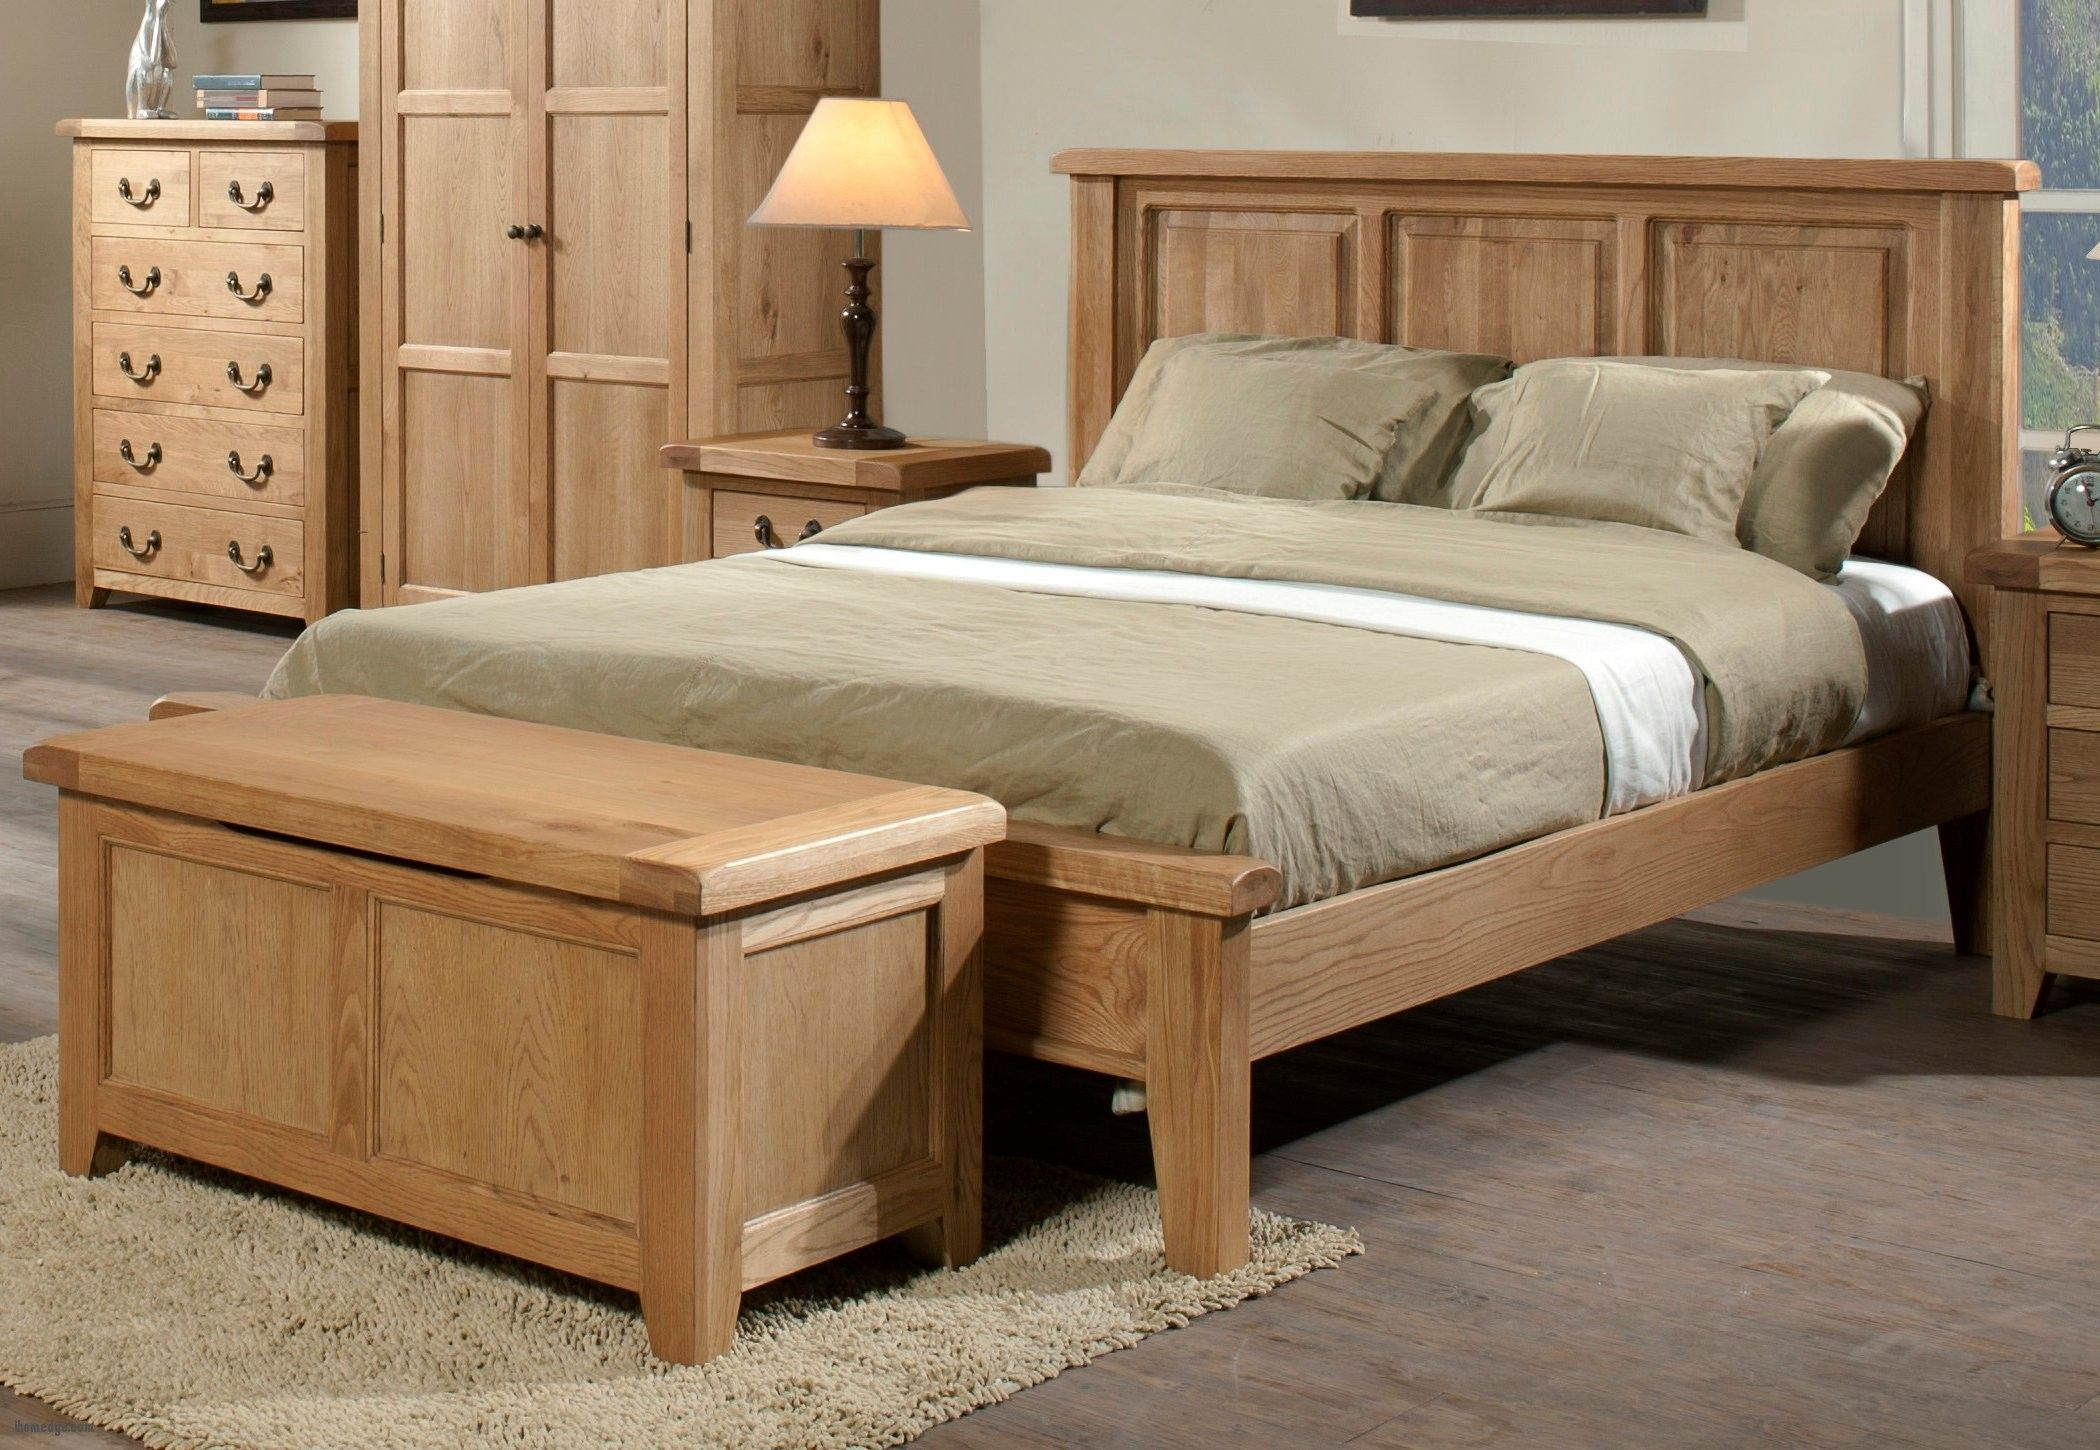 Fine Beautiful Bedroom Frames , Somerset Oak Wooden Bed Frame